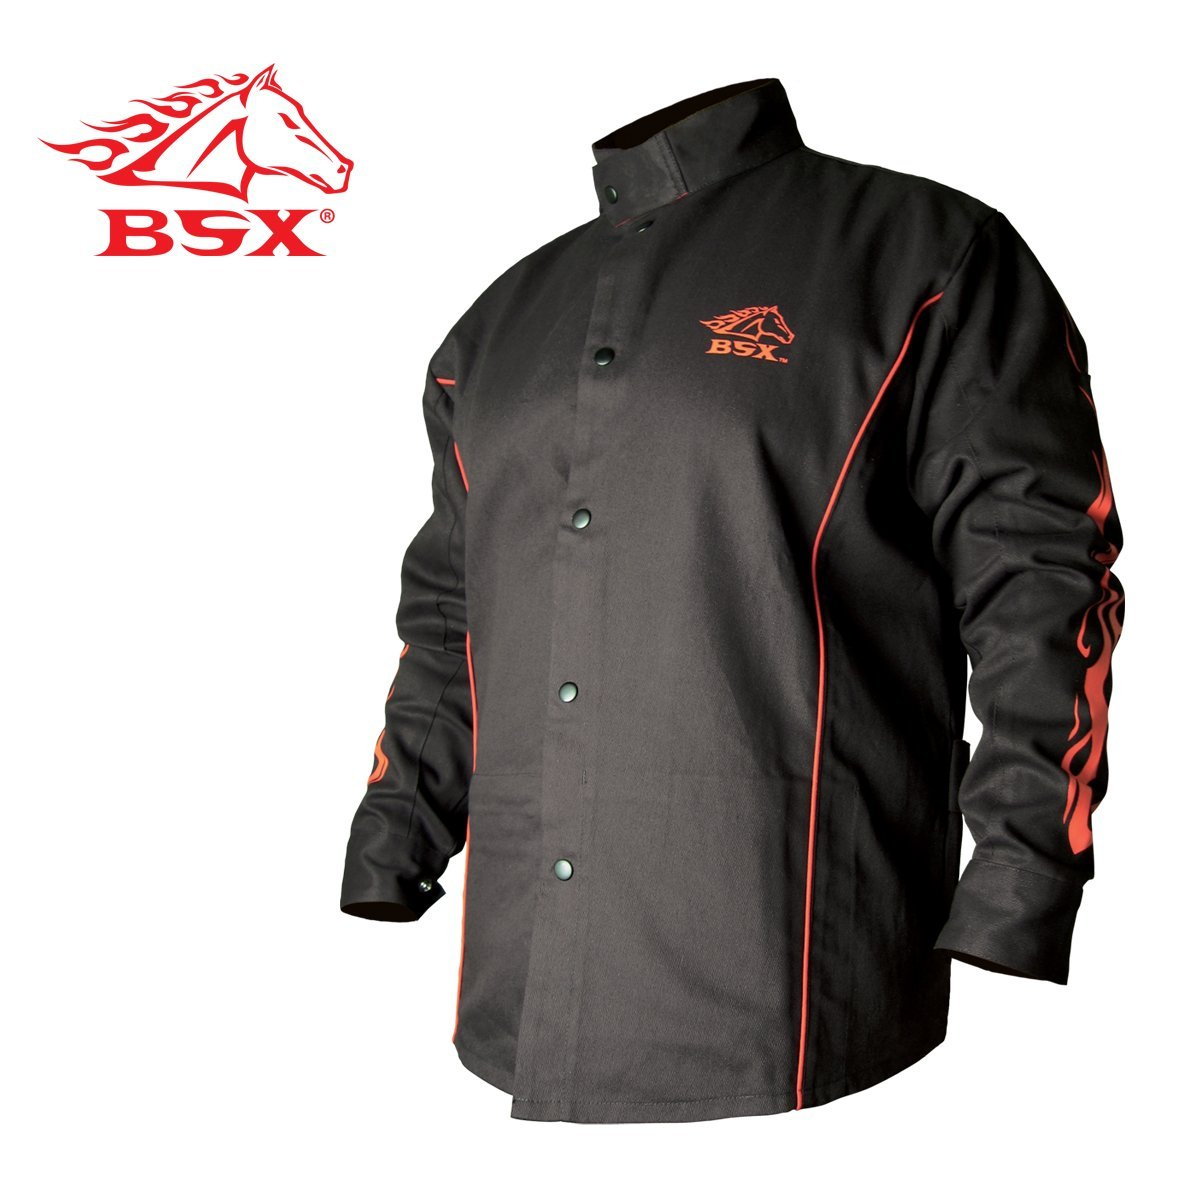 BLACK STALLION BSX® FR Welding Jacket - Black w/Red Flames – MEDIUM